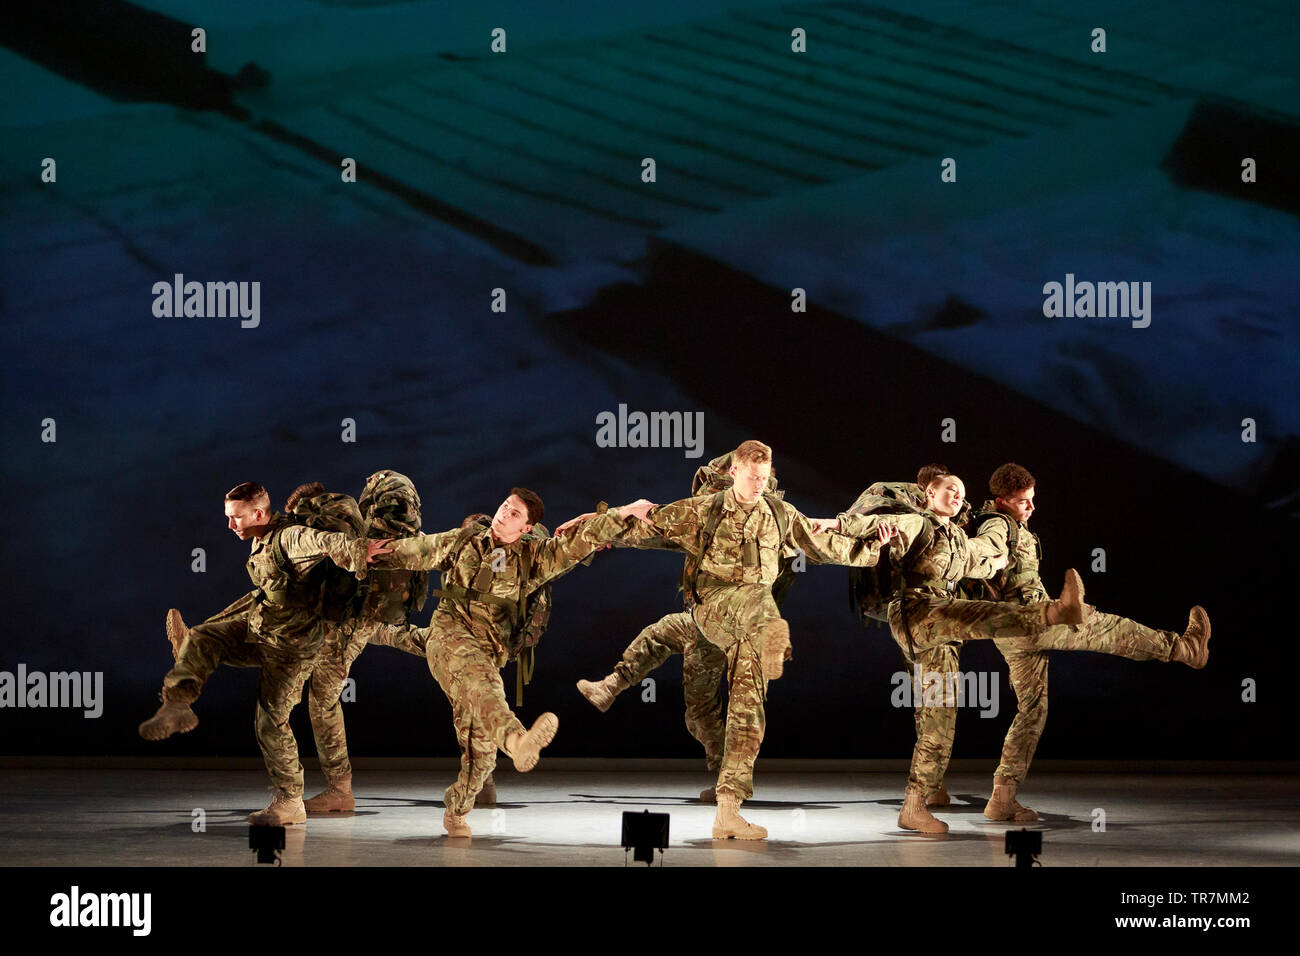 Edinburgh, Scotland, UK. 30th May, 2019. Photocall Scottish premiere of Rosie Kay's 10 SOLDIERS by Commonwealth Games Handover choreographer and Birmingham Hippodrome Associate Artist, Rosie Kay. They will performance on 30 May at 7, 30 in the Festival Theatre. Edinburgh. Credit: Pako Mera/Alamy Live News - Stock Image